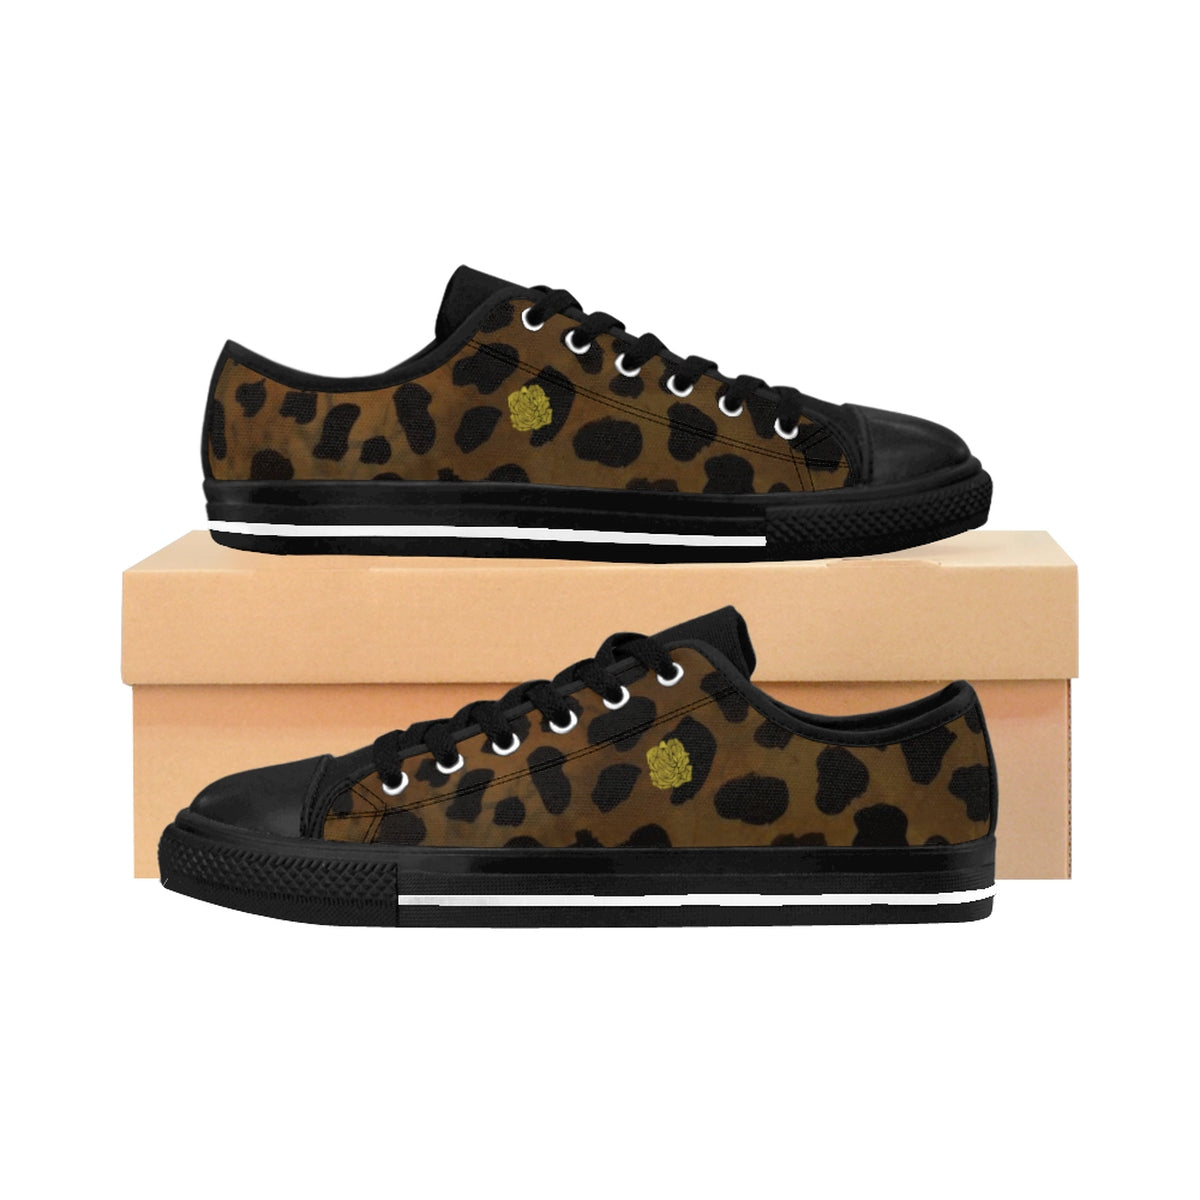 Brown Leopard Print Animal Print Women's Fashion Canvas Sneakers (US Size: 6-12)-Women's Low Top Sneakers-US 10-Black-Heidi Kimura Art LLC